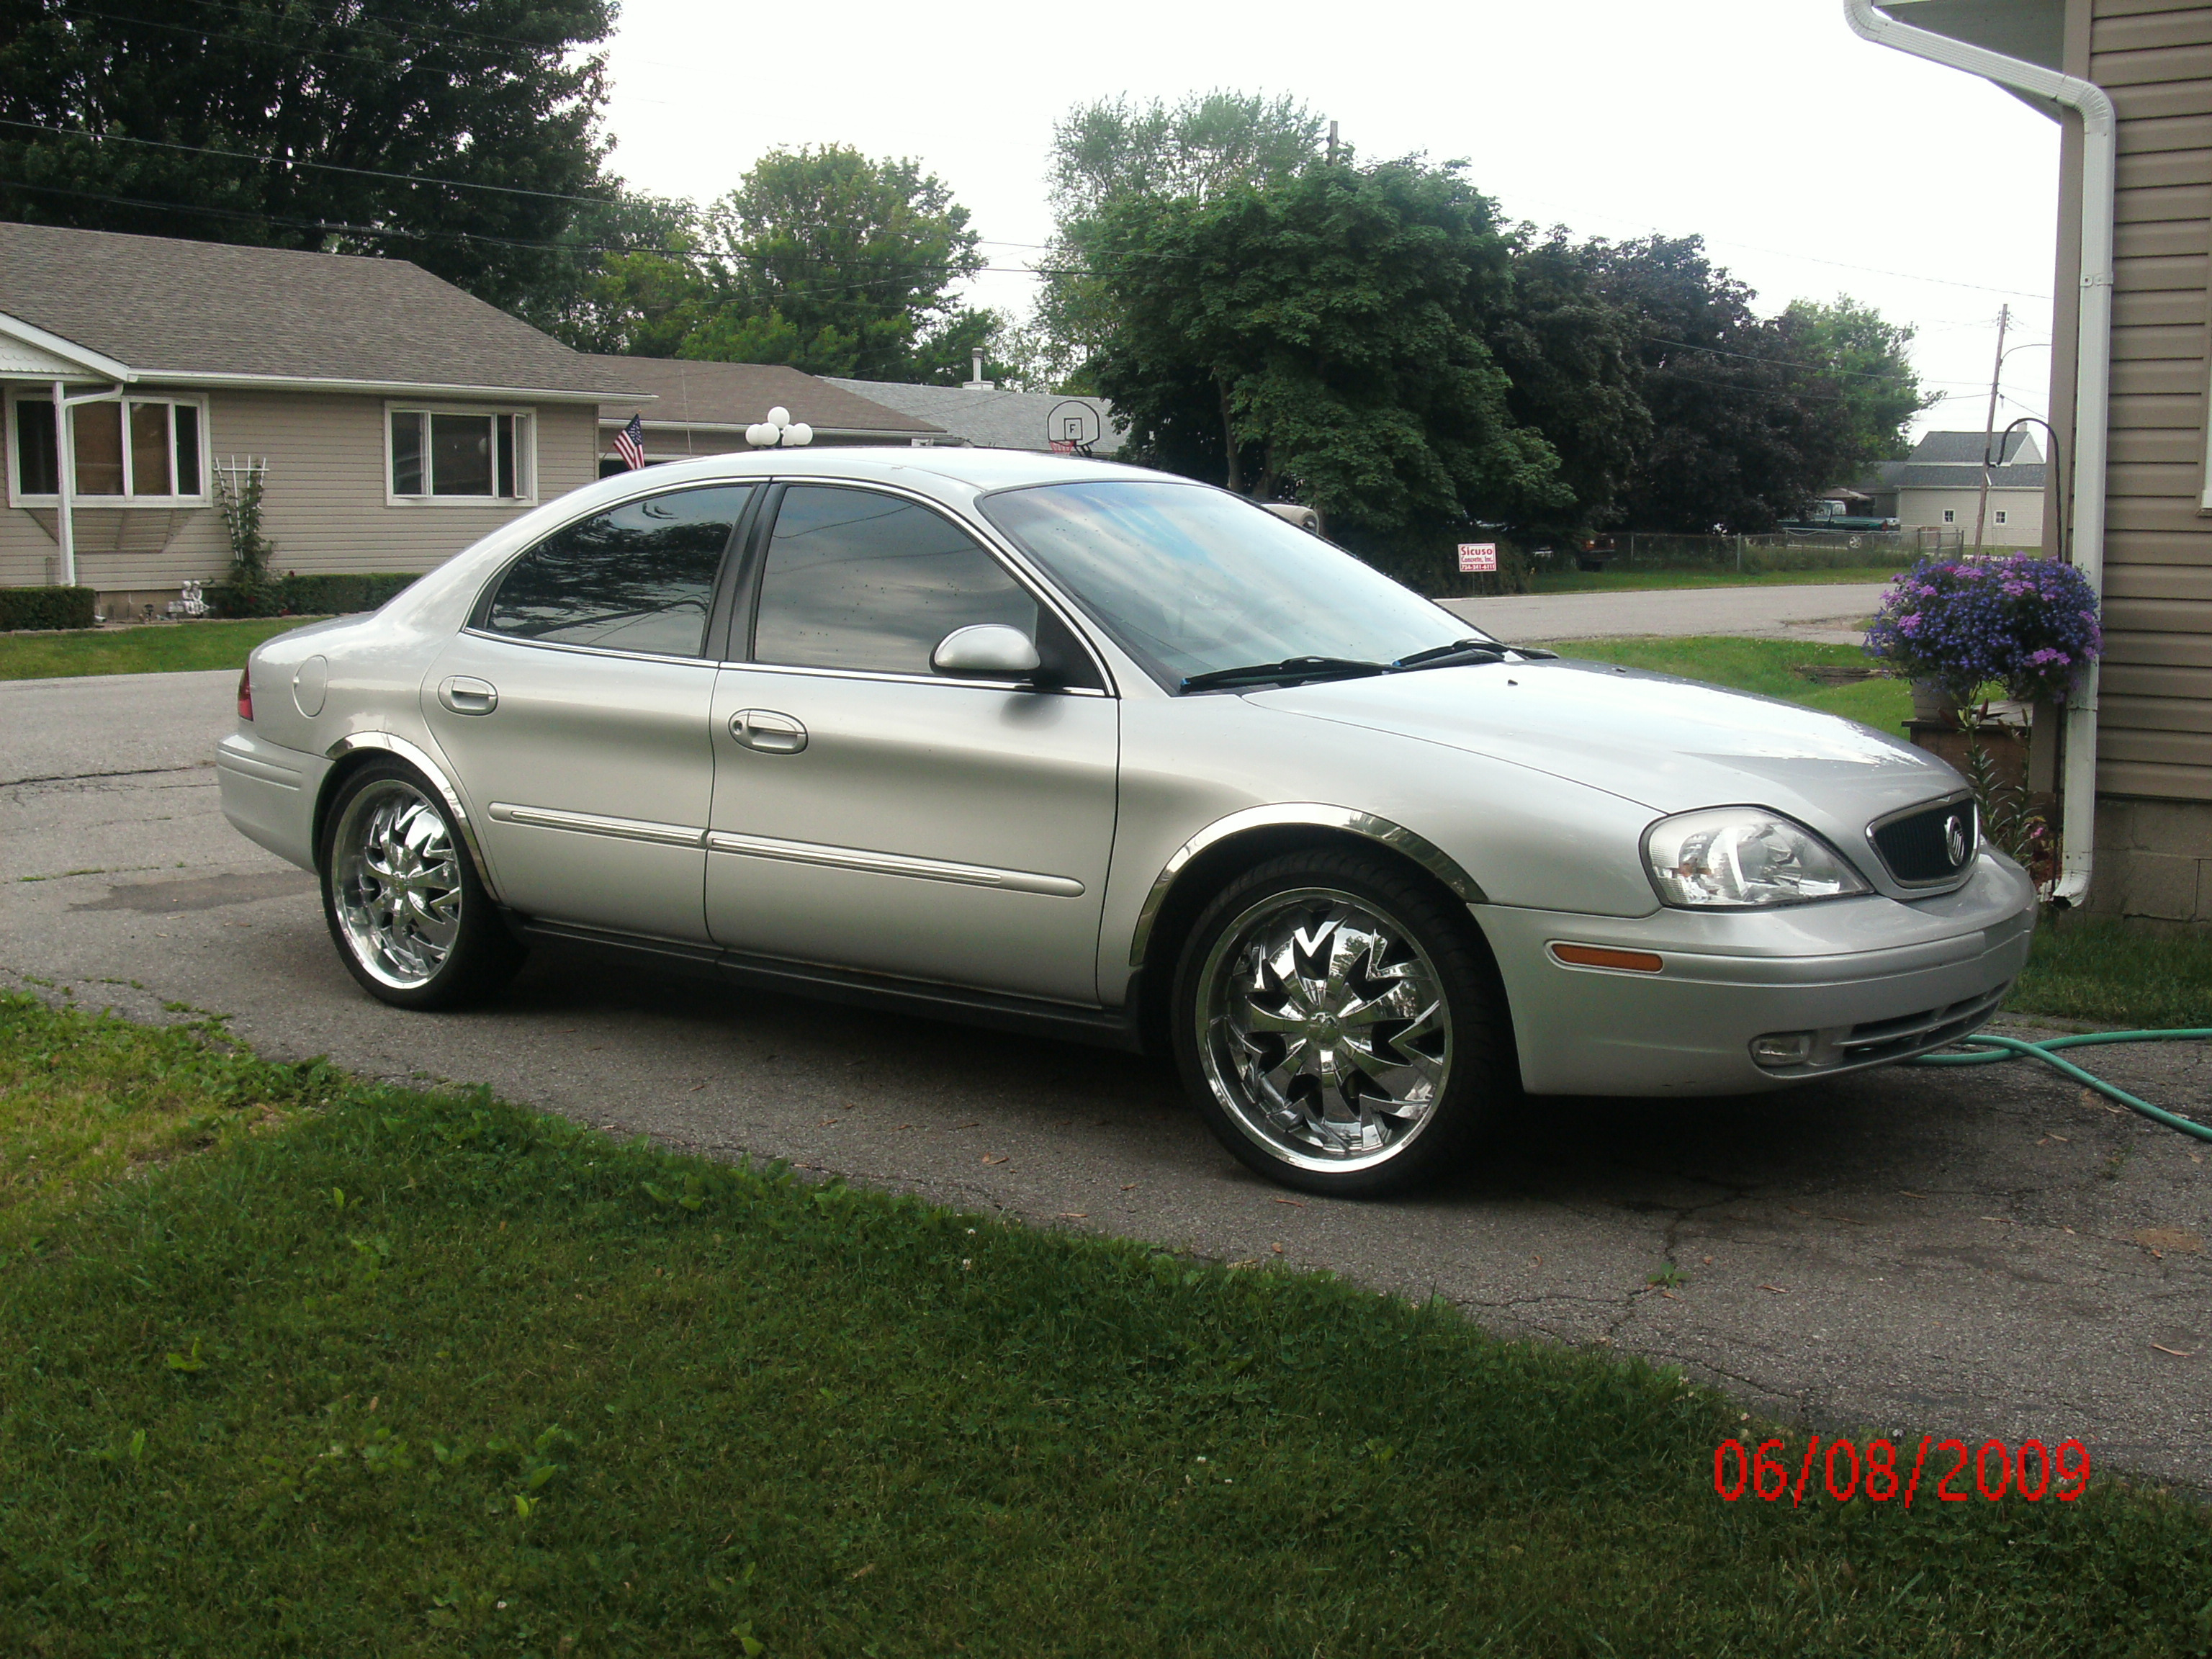 2001 Mercury Sable - Information and photos - Zomb Drive